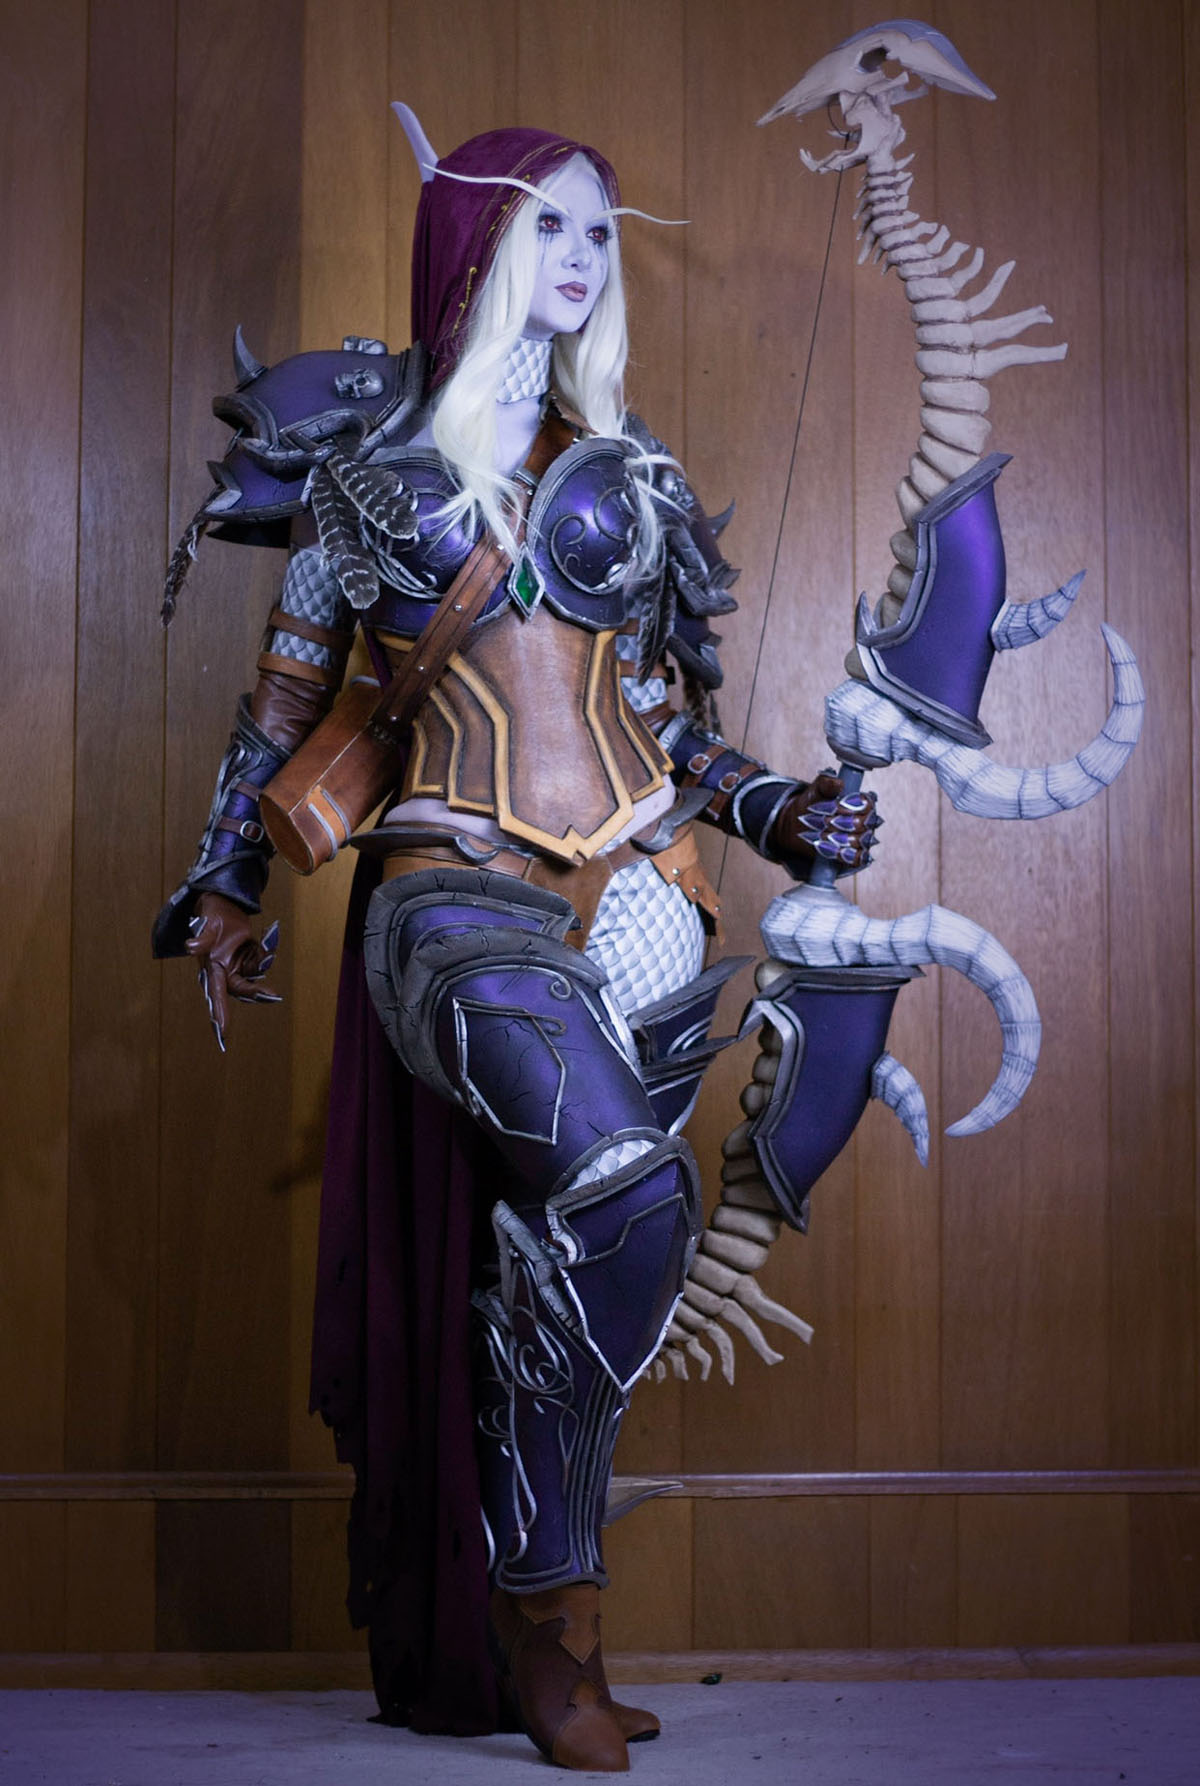 Warchief Sylvanas from World of Warcraft